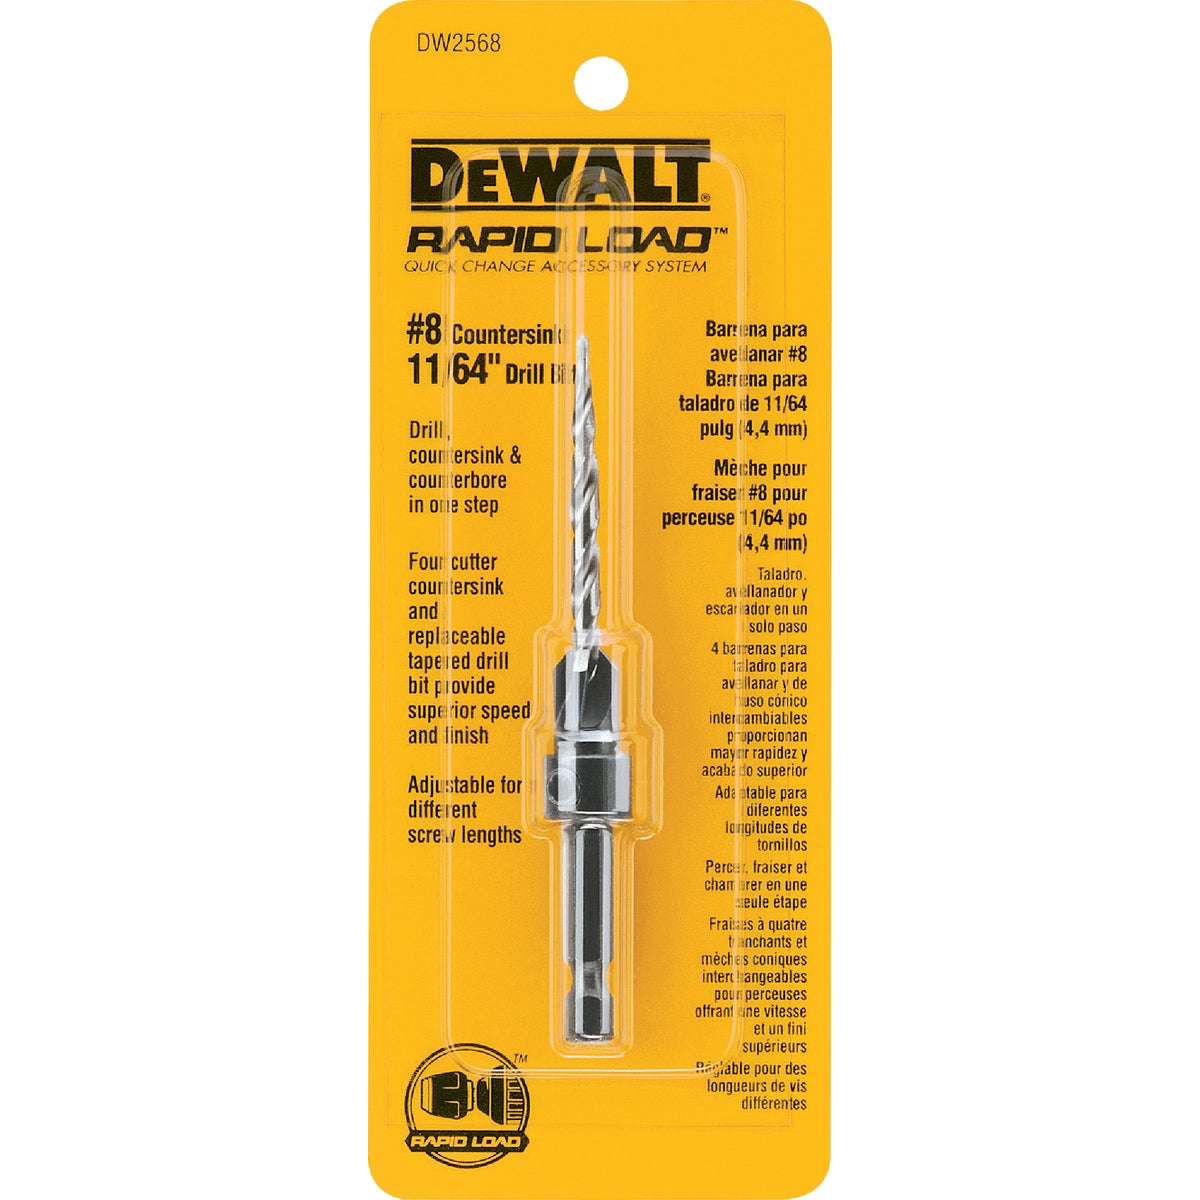 #8 COUNTERSINK - DW2568 by DeWalt